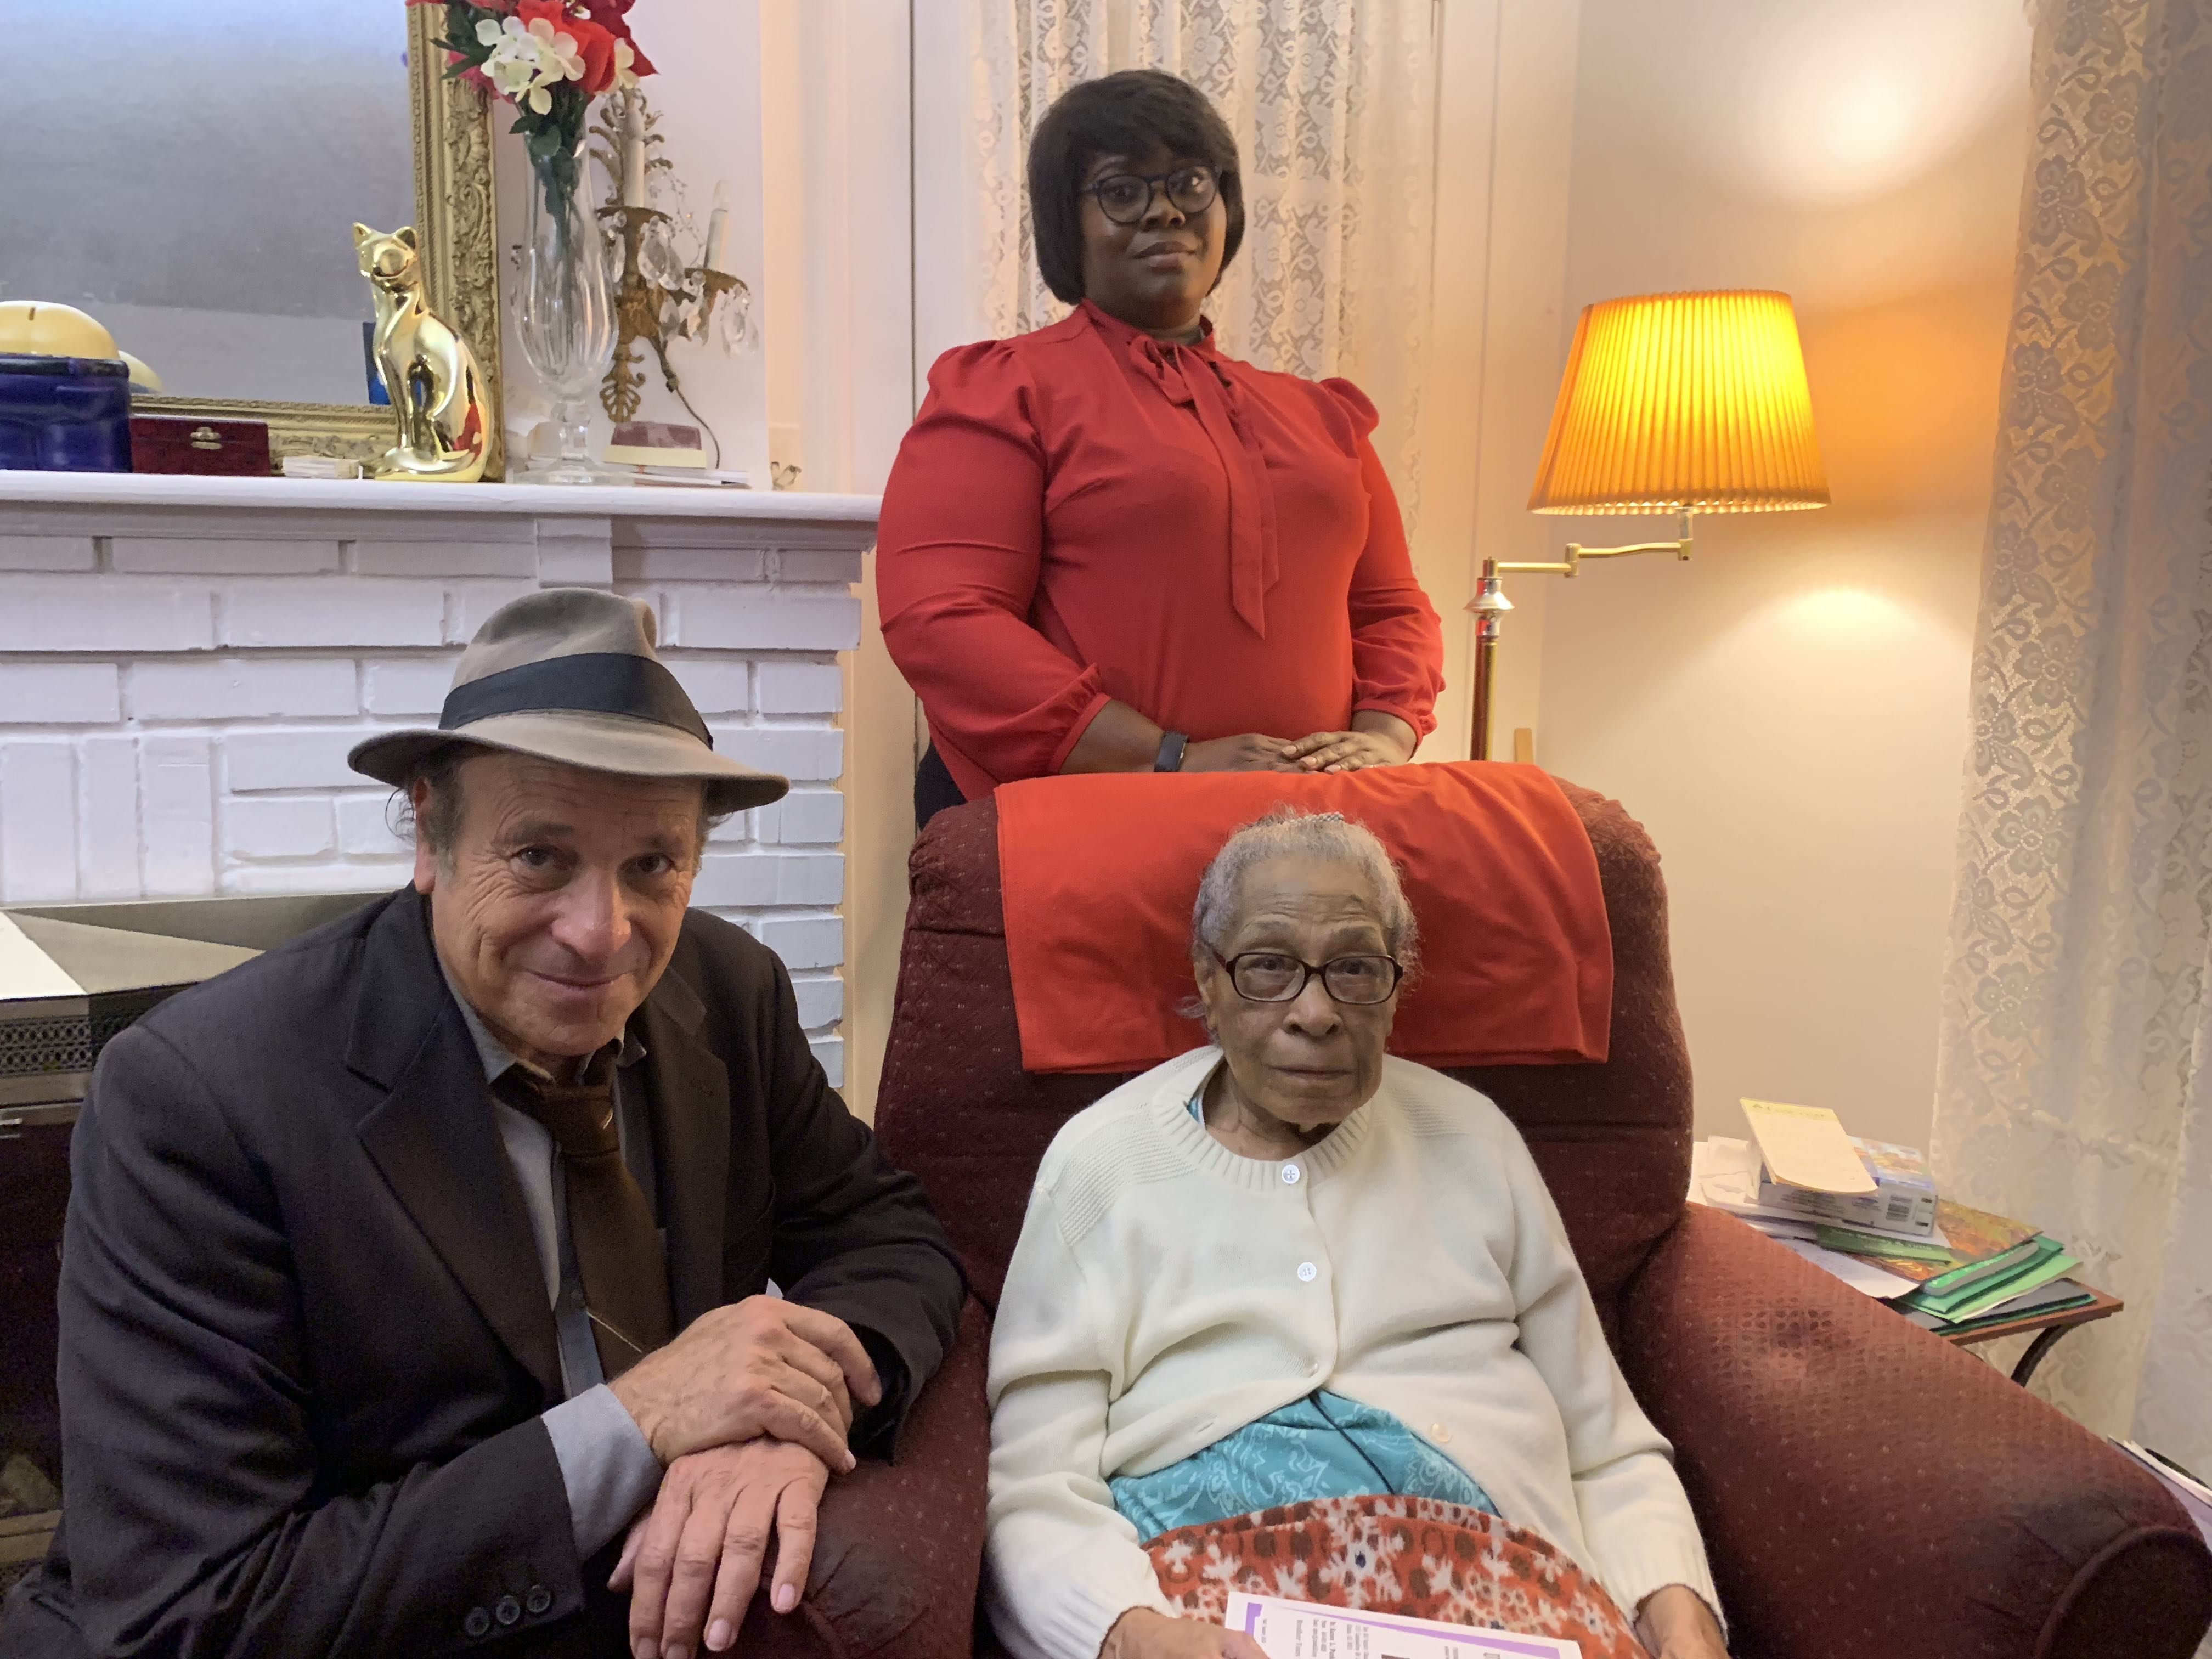 Martin Luther King's Cousin who was blocked from voting in Georgia